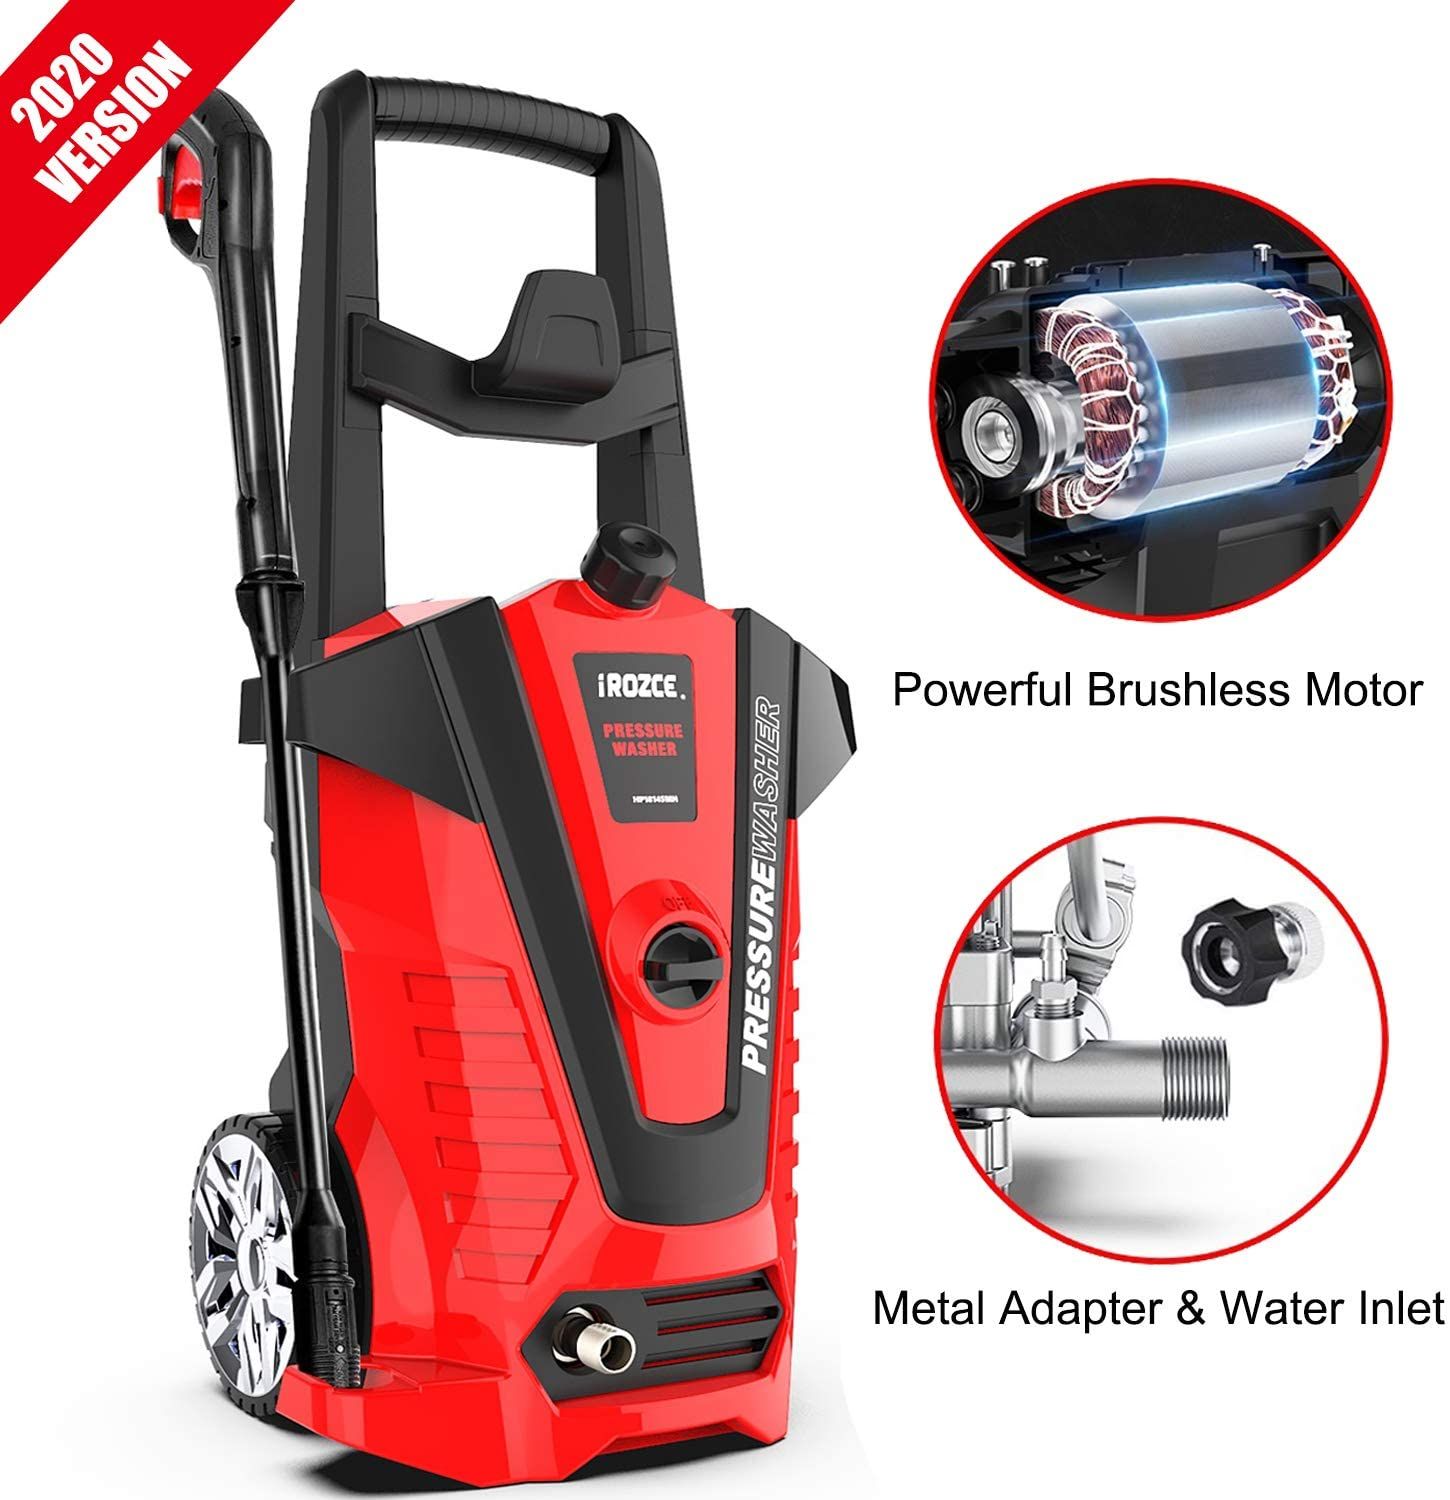 IRozce Pressure Washers 3000 PSI 1.85 GPM Max Electric